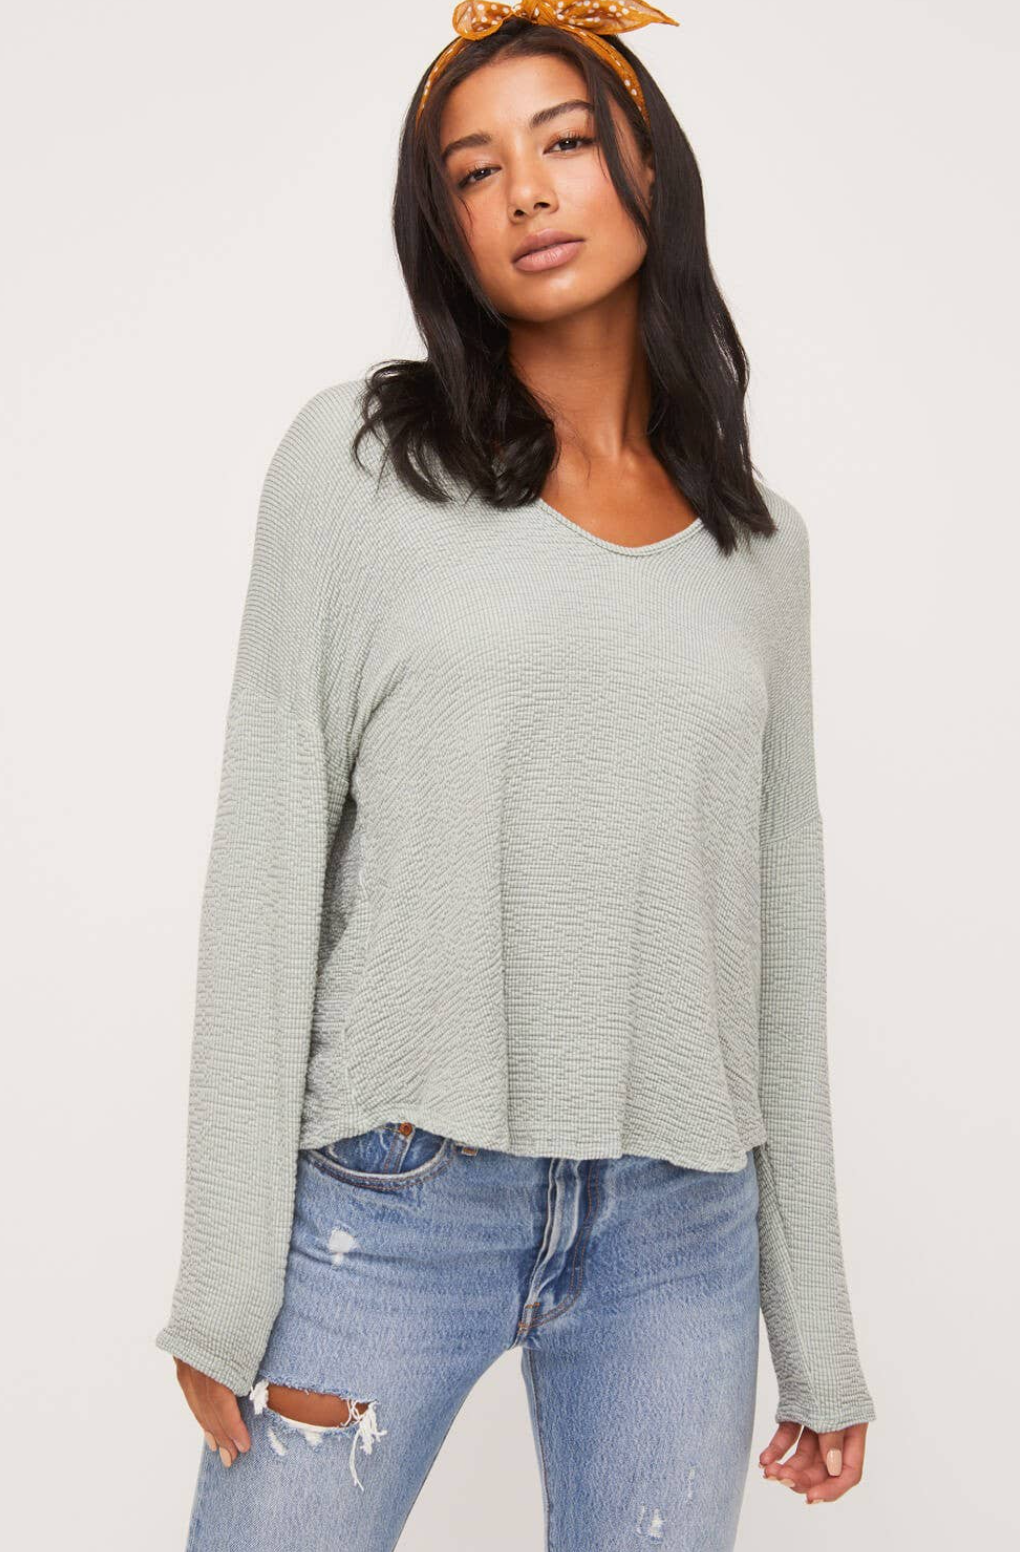 Knit Seam Back Top